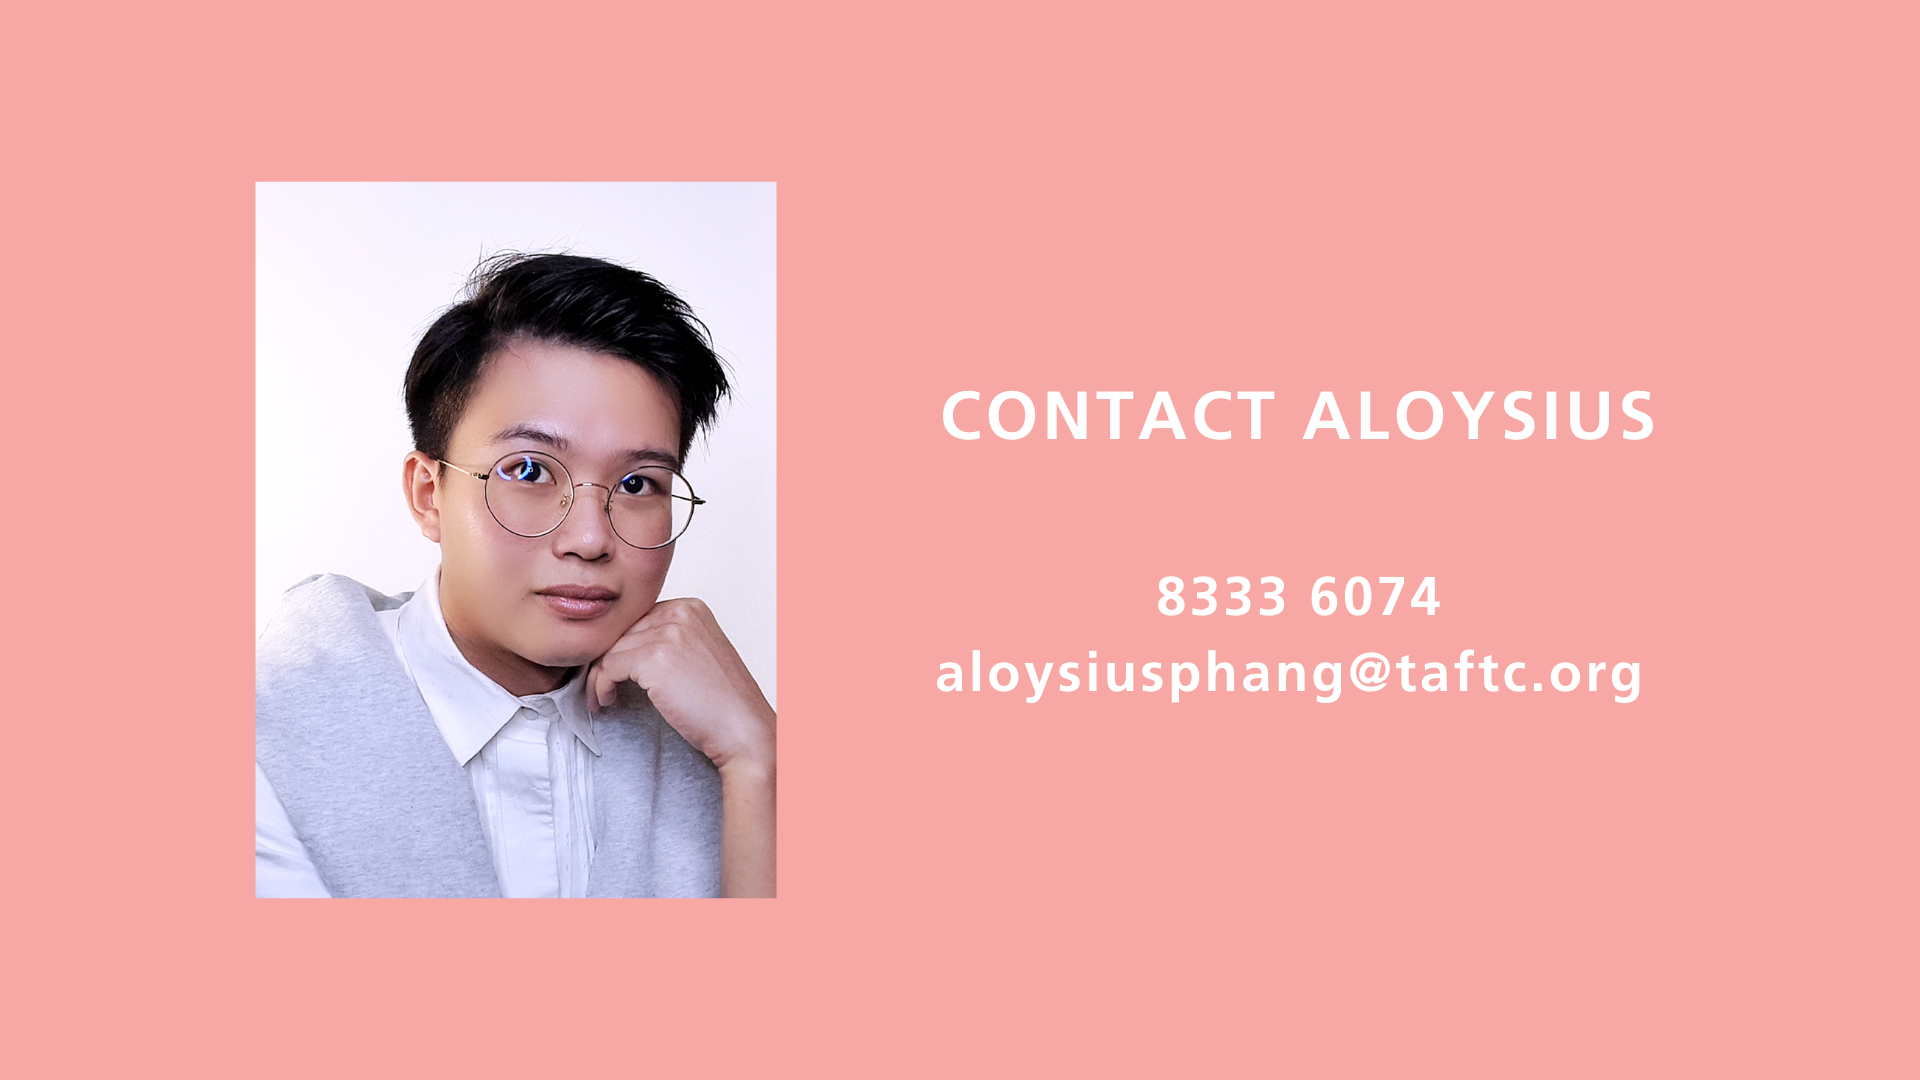 Contact Aloysius to find out more